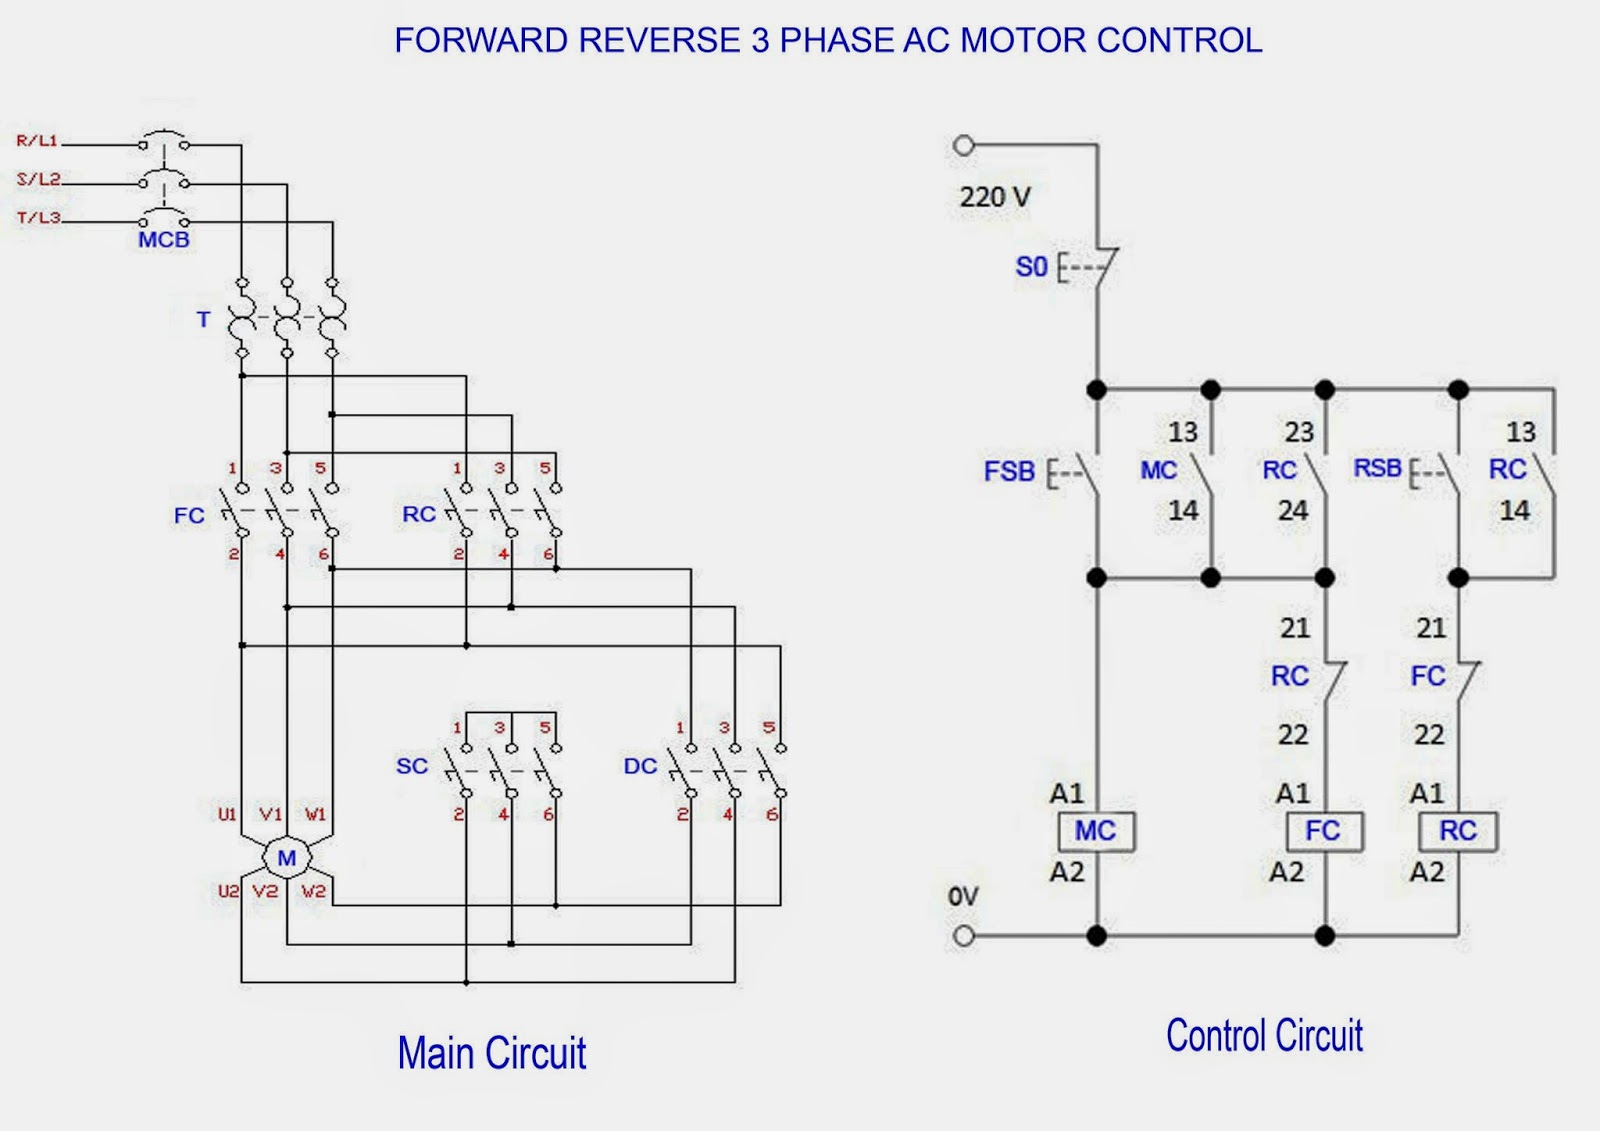 3 phase delta motor wiring diagram 2014 electrical winding wiring diagrams forward reverse star delta wiring diagram